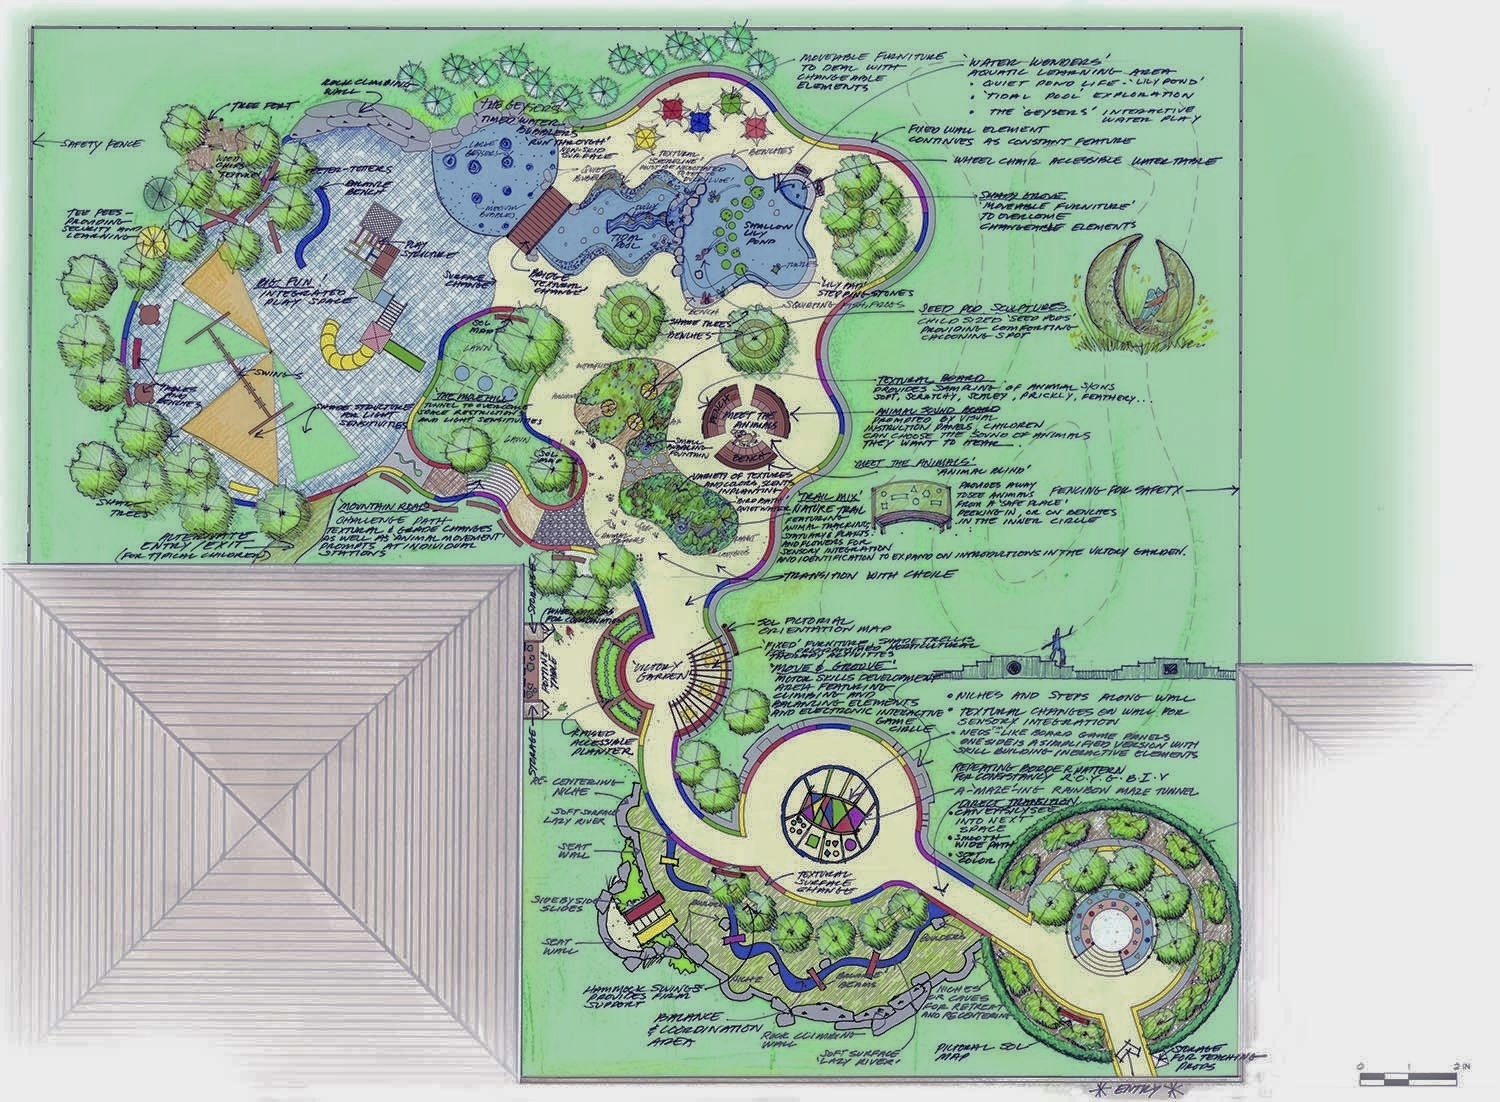 Sequential Outdoor Learning Environment was conceived by Tara M Vincenta and is a product of Artemis Landscape Architects Inc., Bridgeport, CT. All Rights Reserved including the use of the SOL logo, name, and environmental concepts.